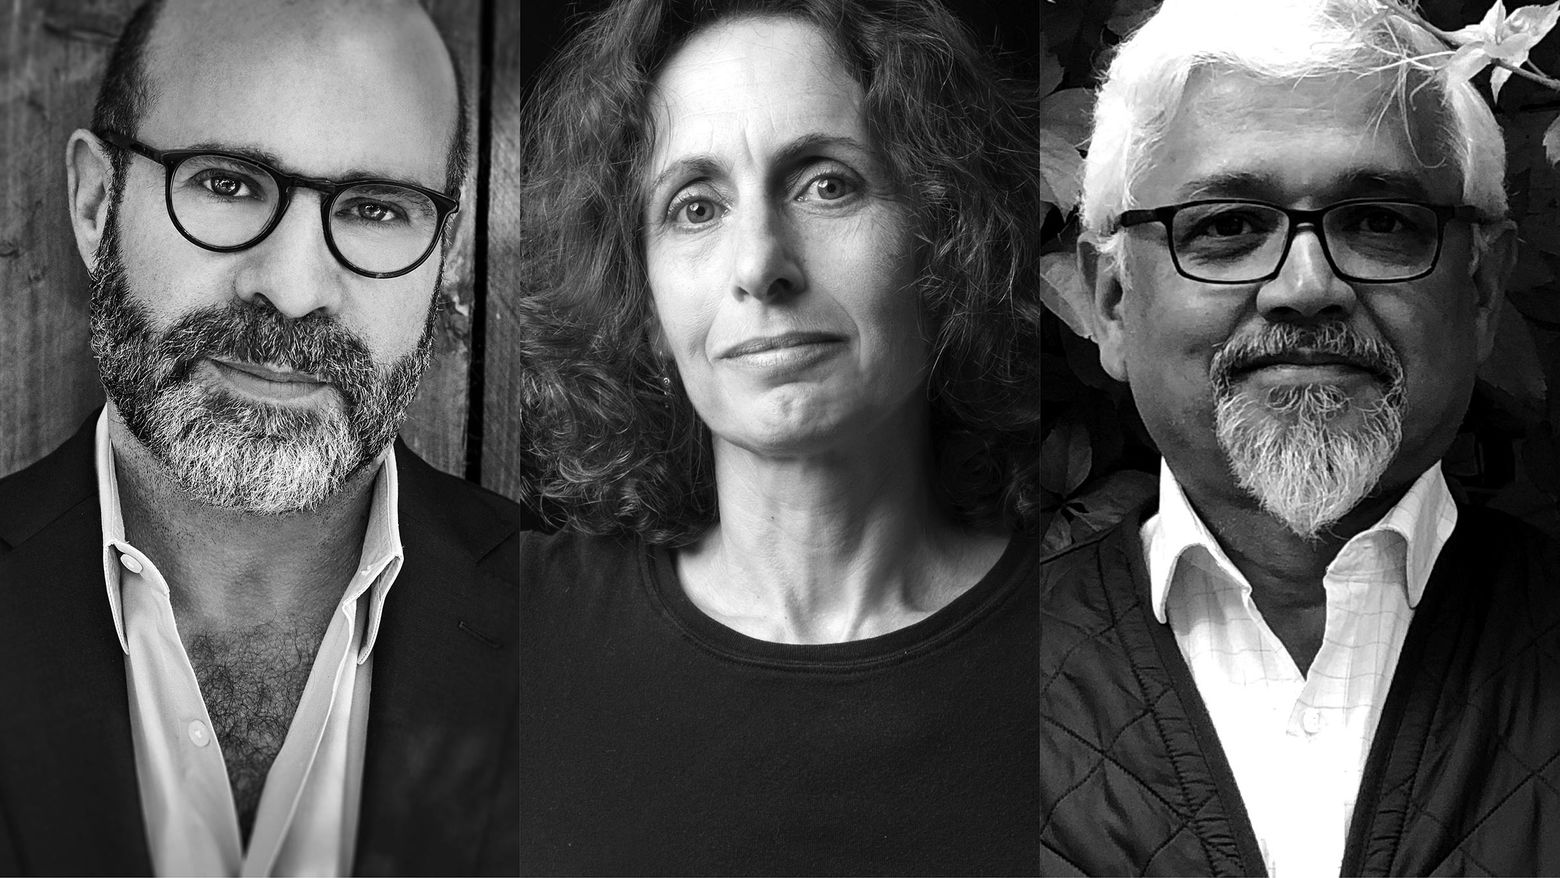 Three photographic portraits in black and white side by side. A man on the left with a beard and glasses, a woman in the middle with long brown hair, and a man on the right with a white beard and glasses.